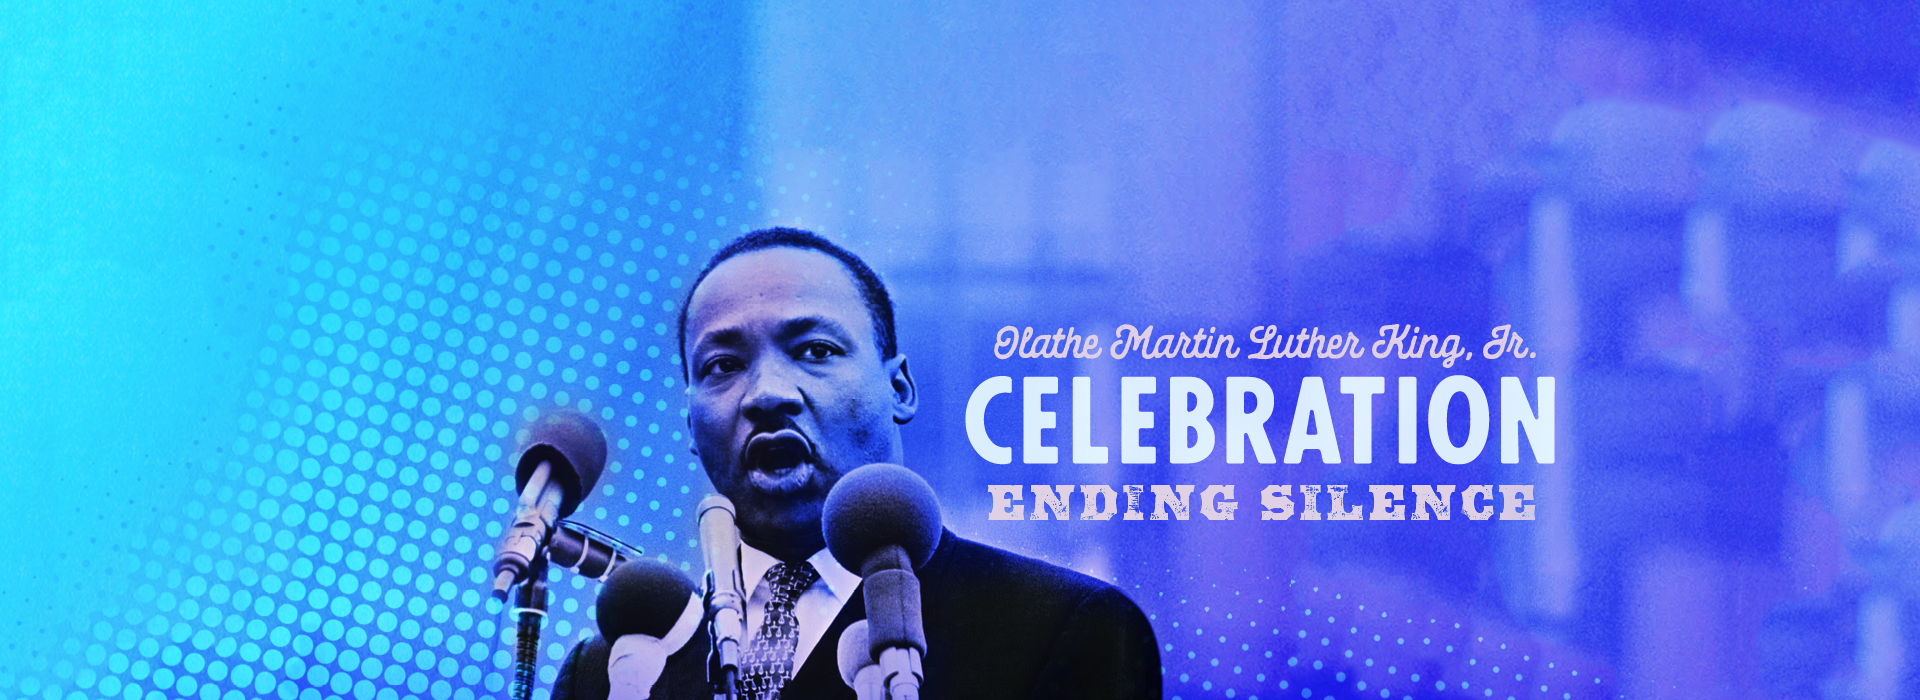 MLK Web Slider